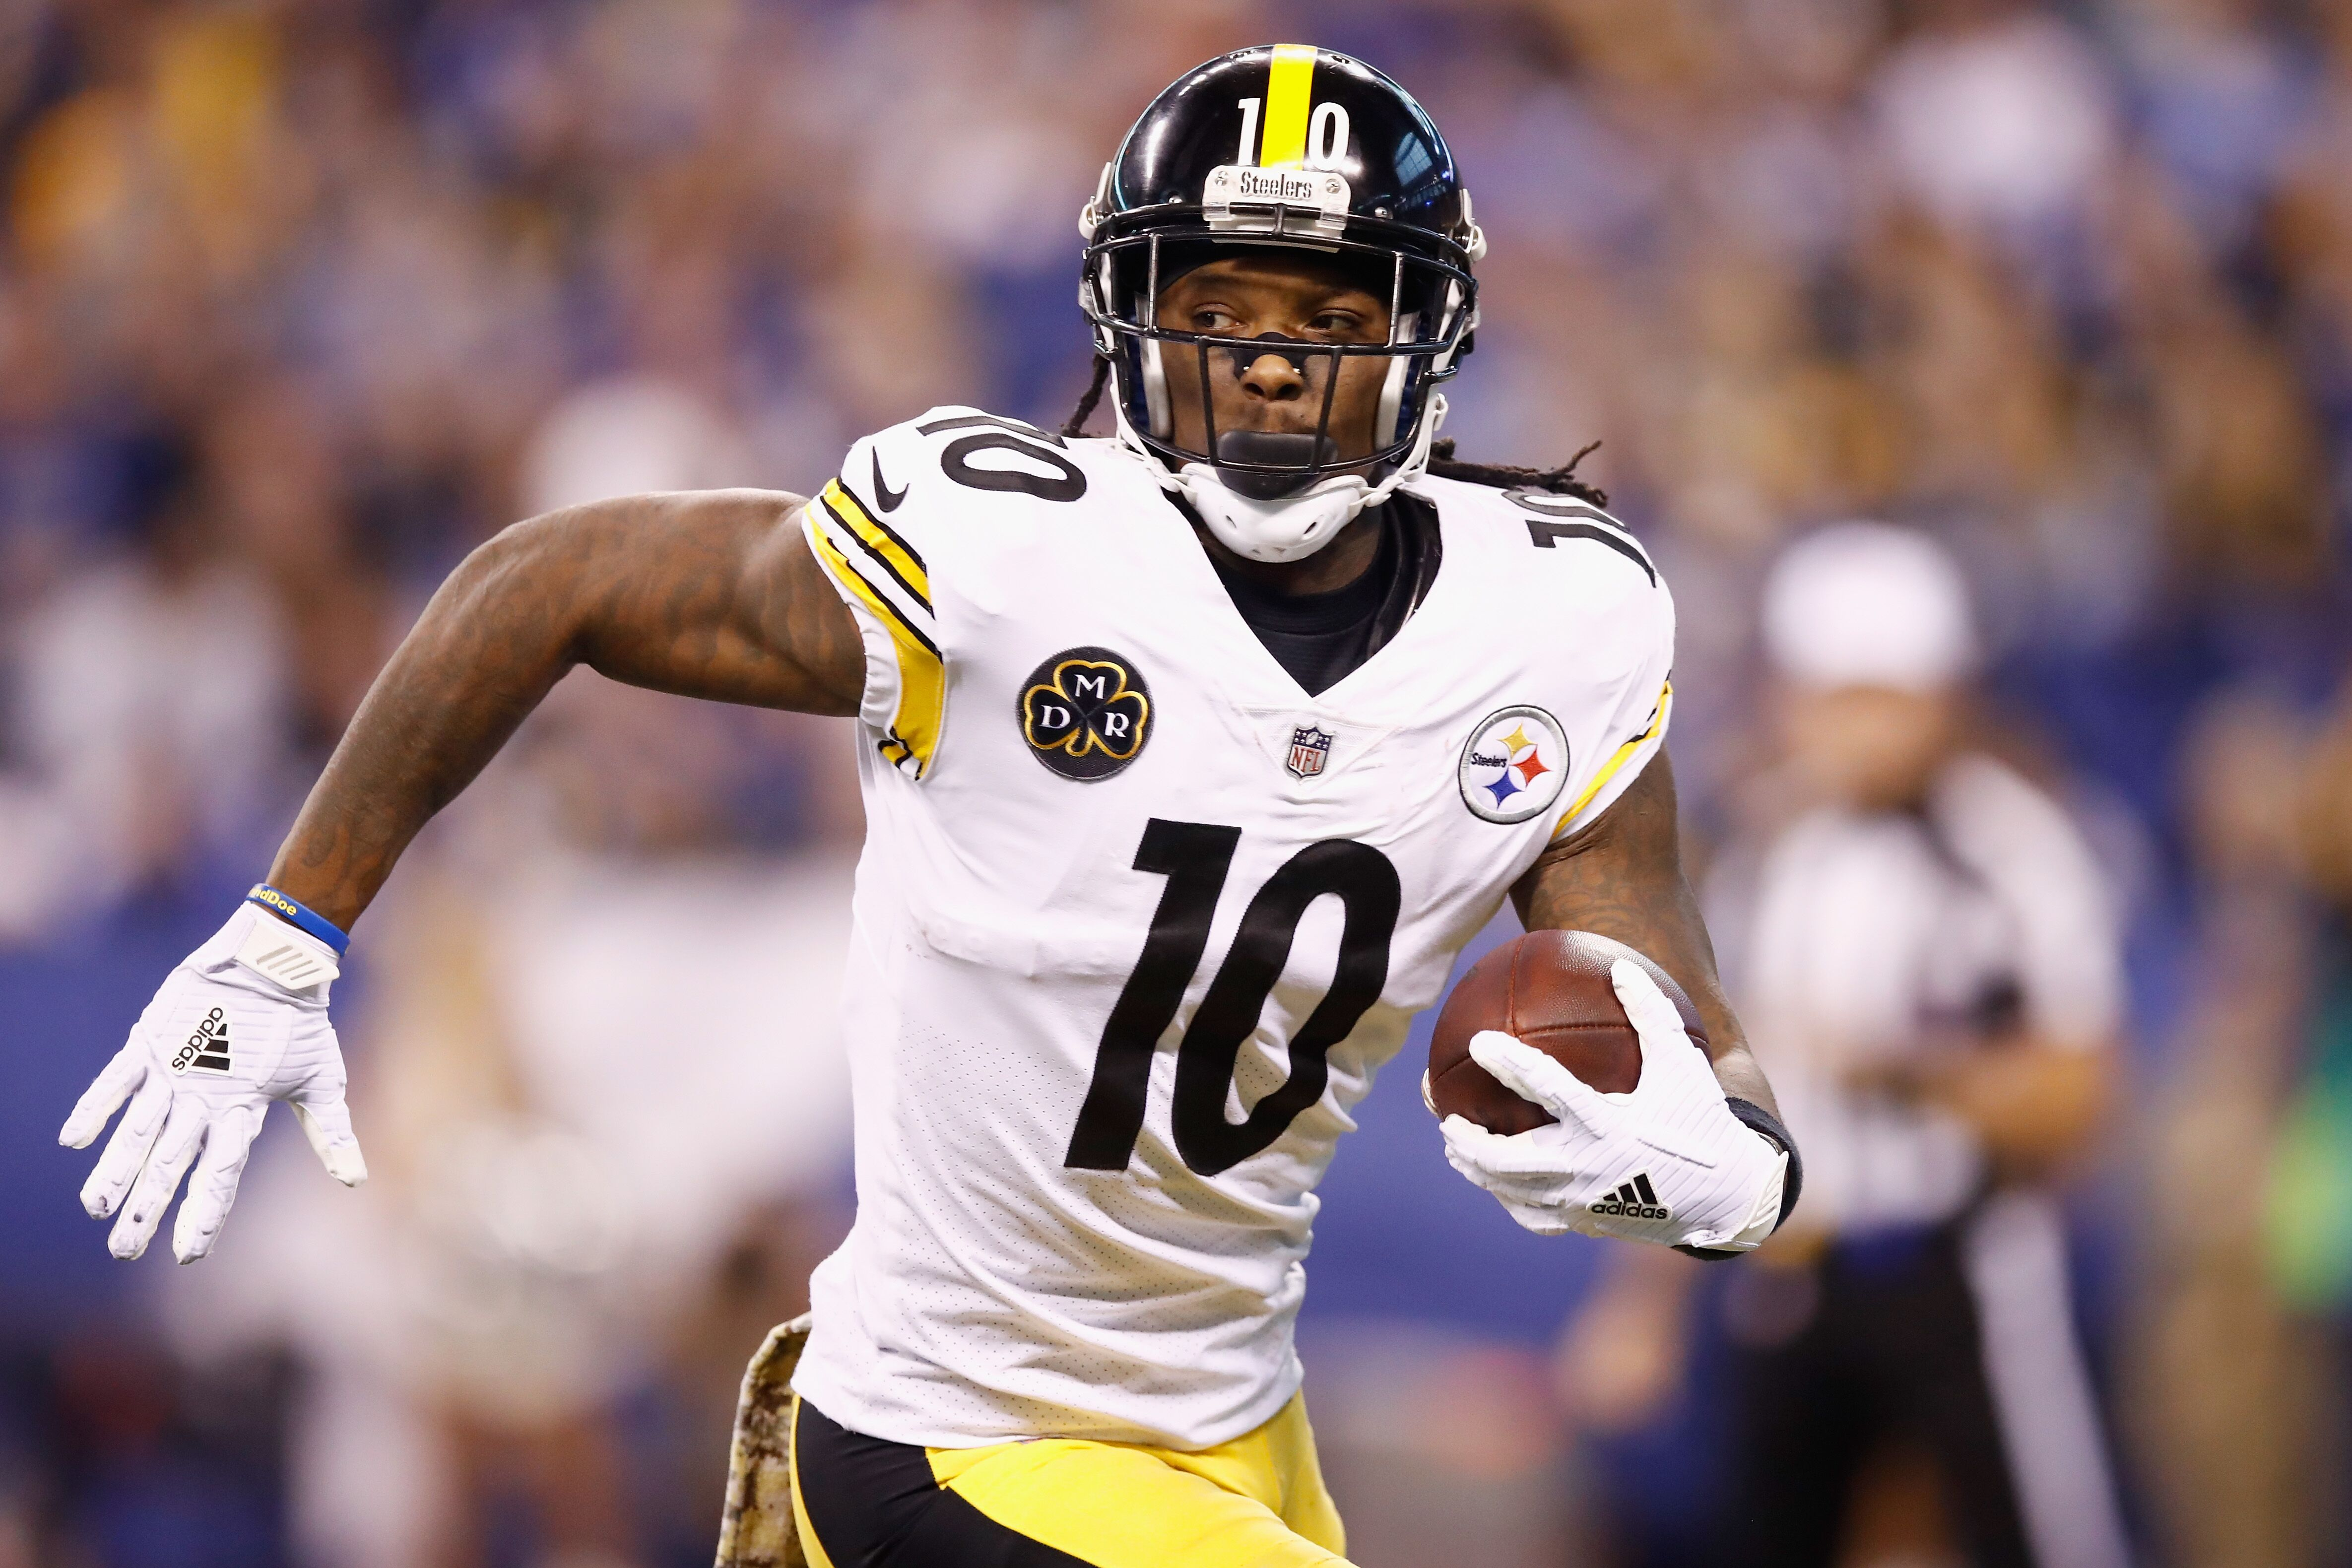 873318628-pittsburgh-steelers-v-indianapolis-colts.jpg